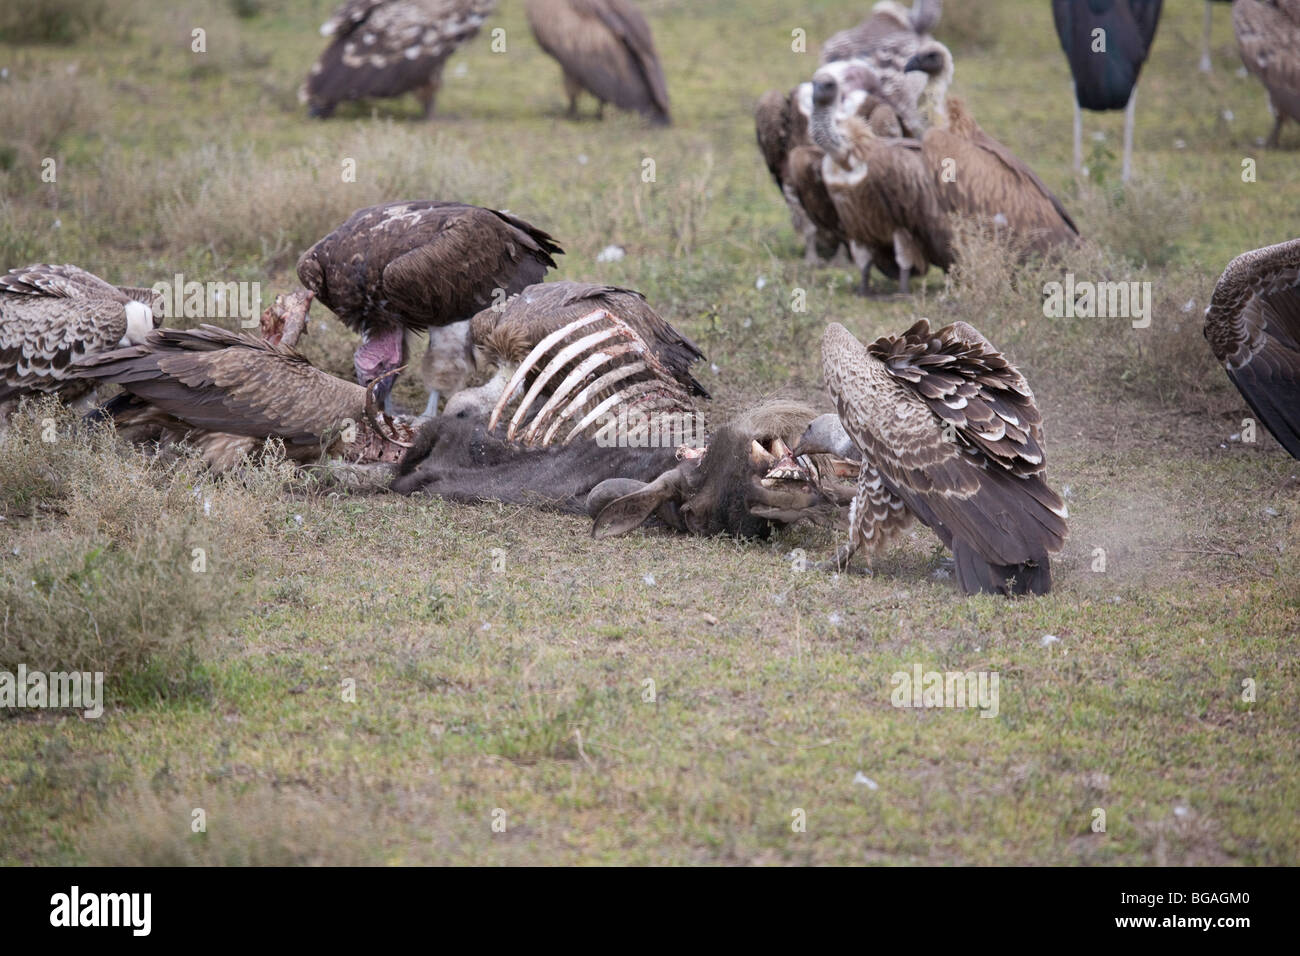 Vultures and Storks scavenging a wildebeest carcass on the East African Plains - Stock Image